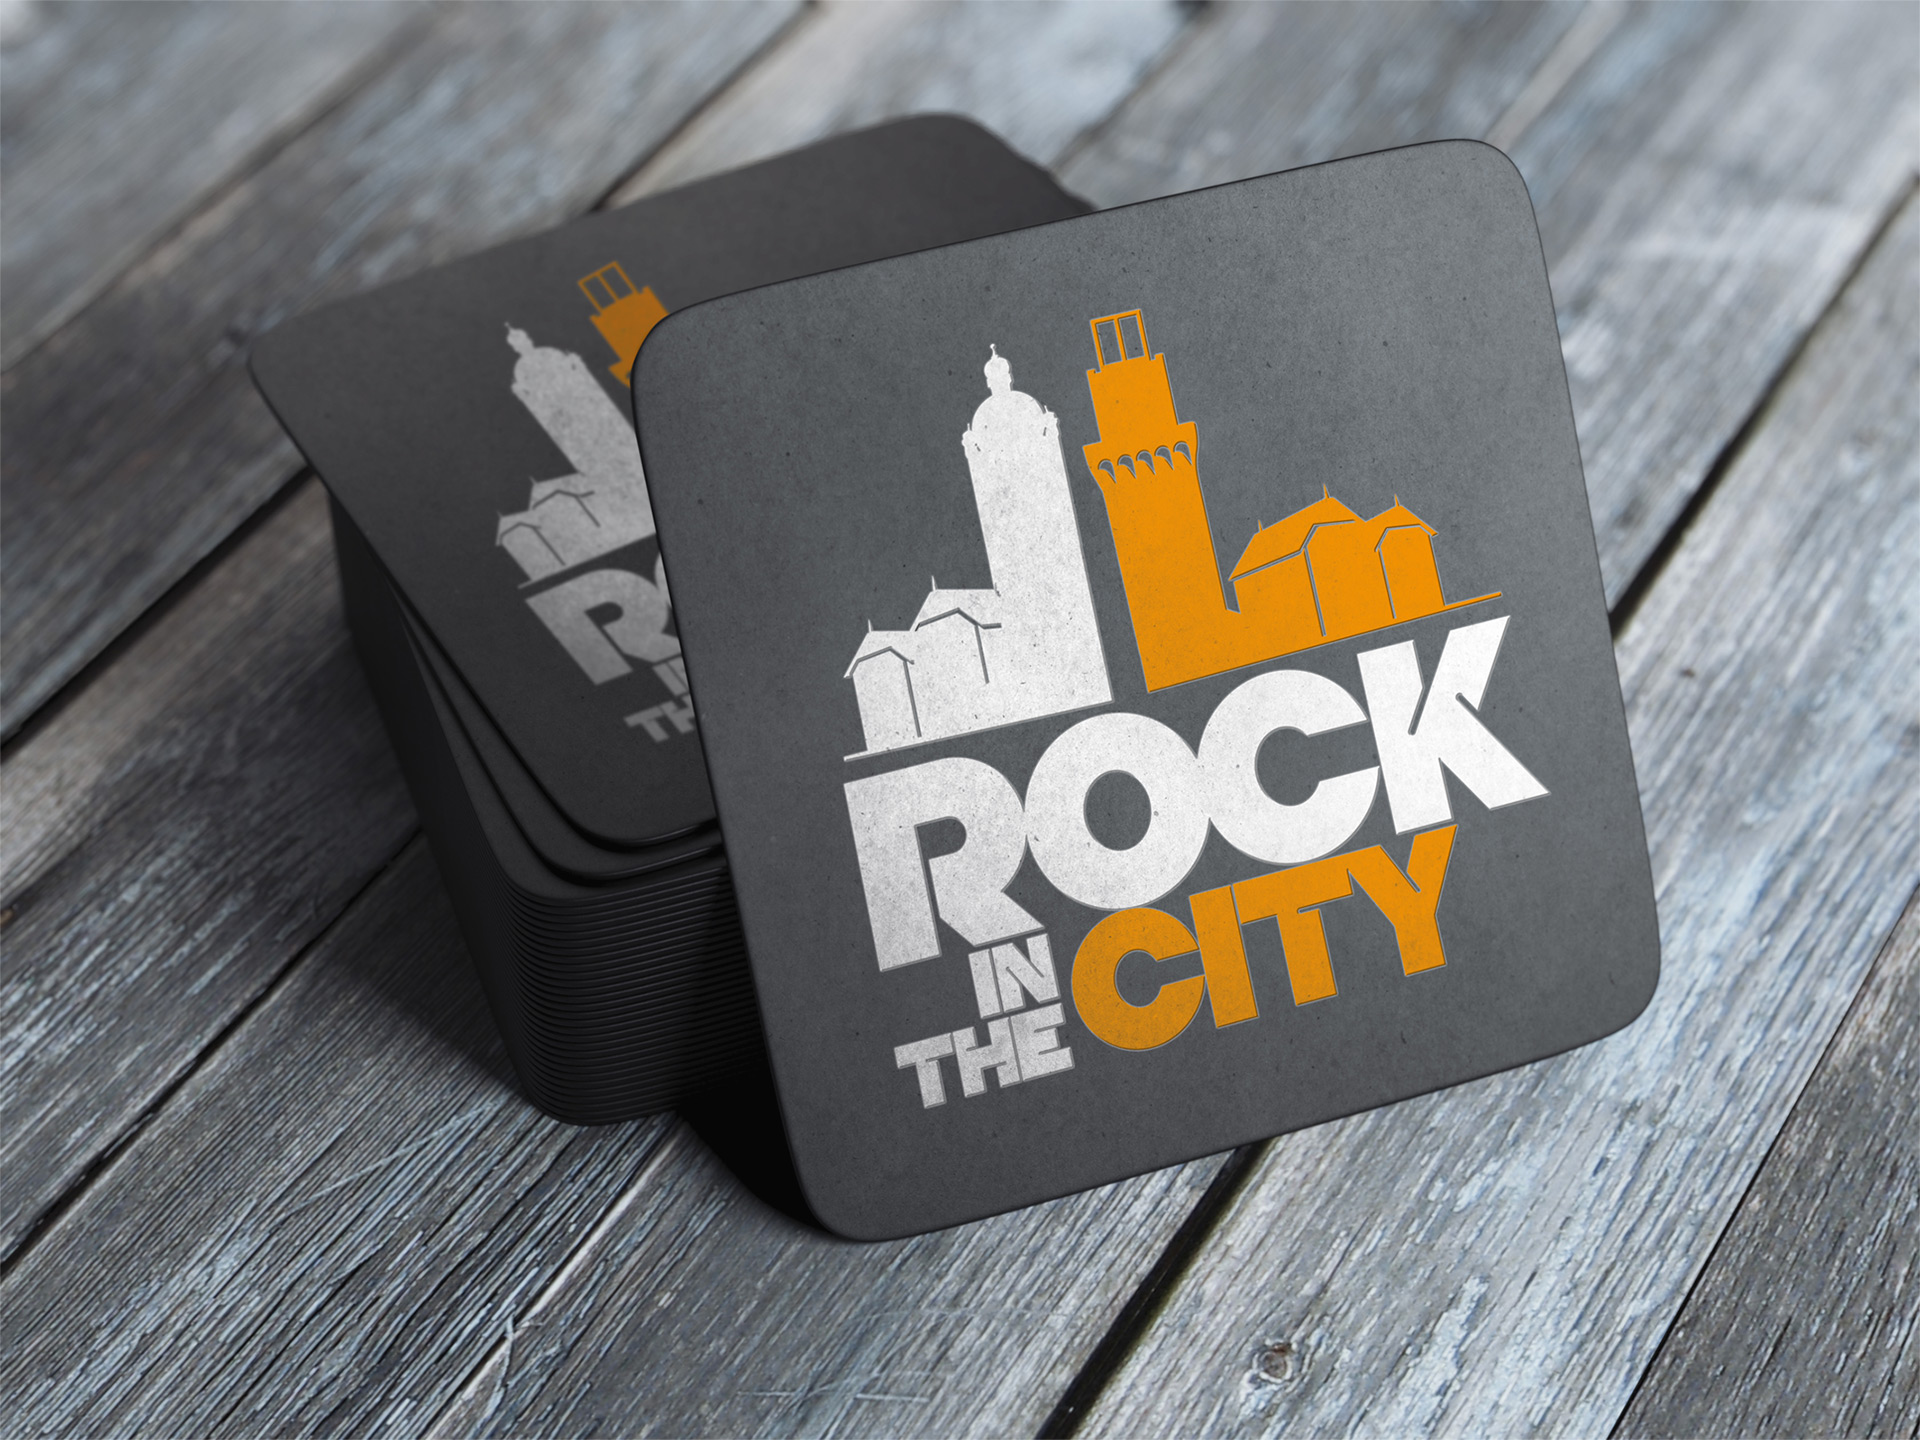 Rock In The City.jpg